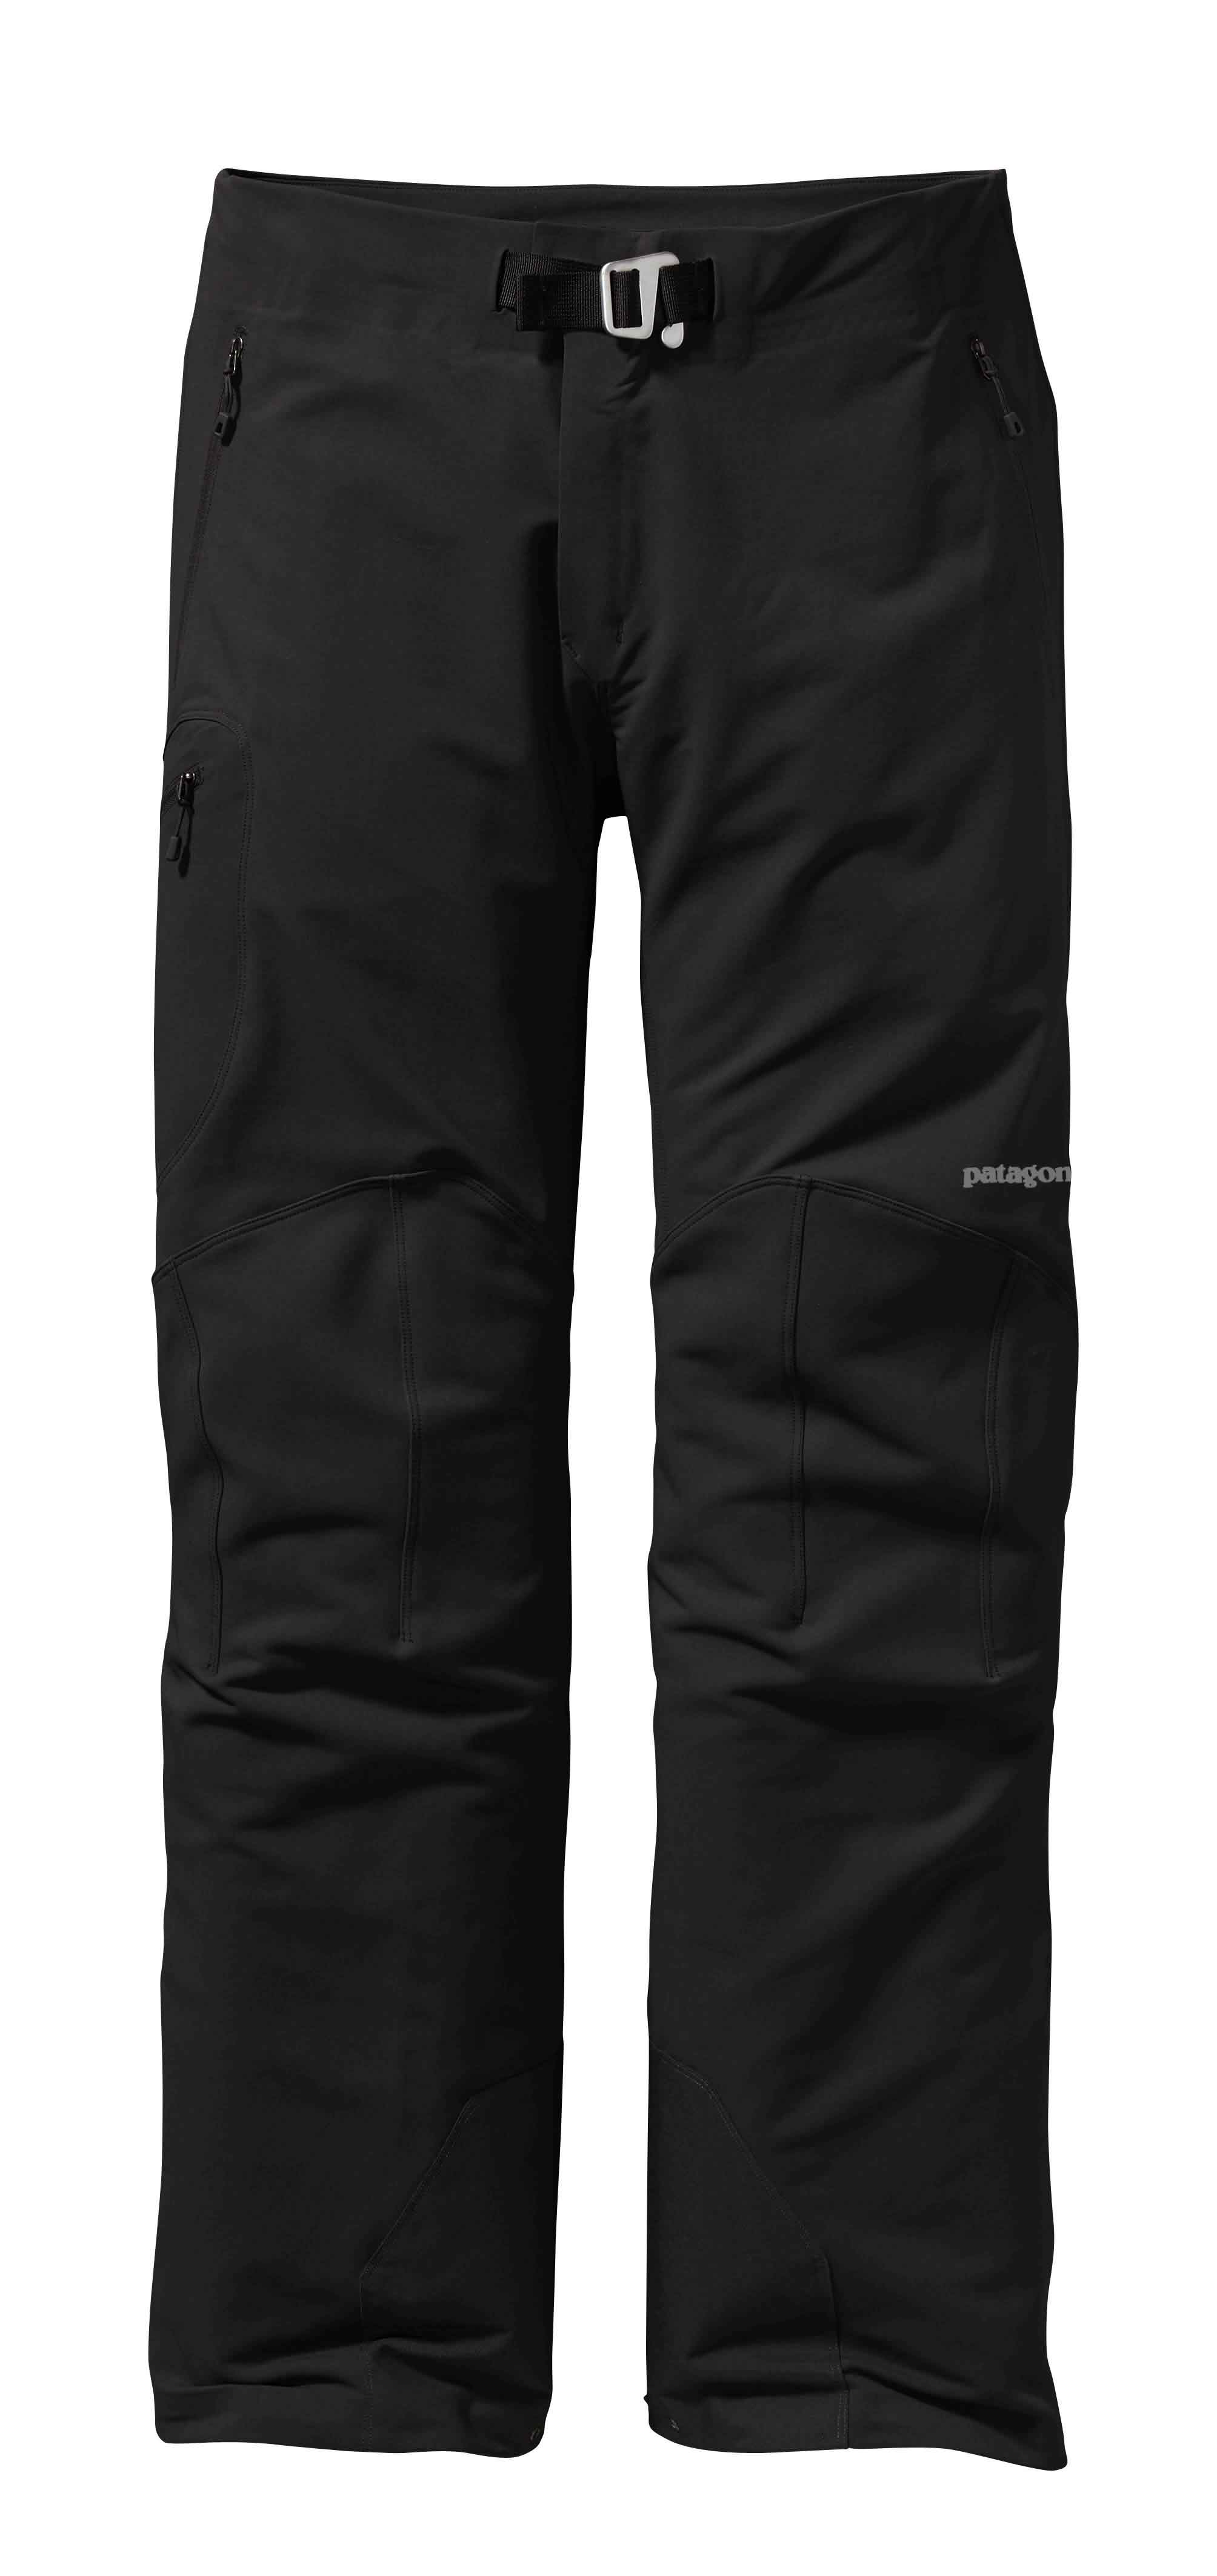 Patagonia men's Alpine Guide Pant - The Alpine Guide Jacket and Pants are highly durable, breathable soft shells made of a new wind-resistant Polartecr Power Shieldr Stretch Woven fabric to both protect and vent on extended, demanding climbs or ski tours. Polartecr Power Shieldr Stretch Wovens are enhanced with Polartecr Hardfacer technology to dramatically increase abrasion and snag/pick resistance, improve lasting durable water repellency, reduce moisture gain in wet conditions and accelerate dry-times. Polartecr Power Shieldr Stretch Woven fabrics offer a dramatic improvement on the original soft shell concept - single layer woven fabrics that deliver excellent weather protection, high breathability and lasting durability for harsh use.